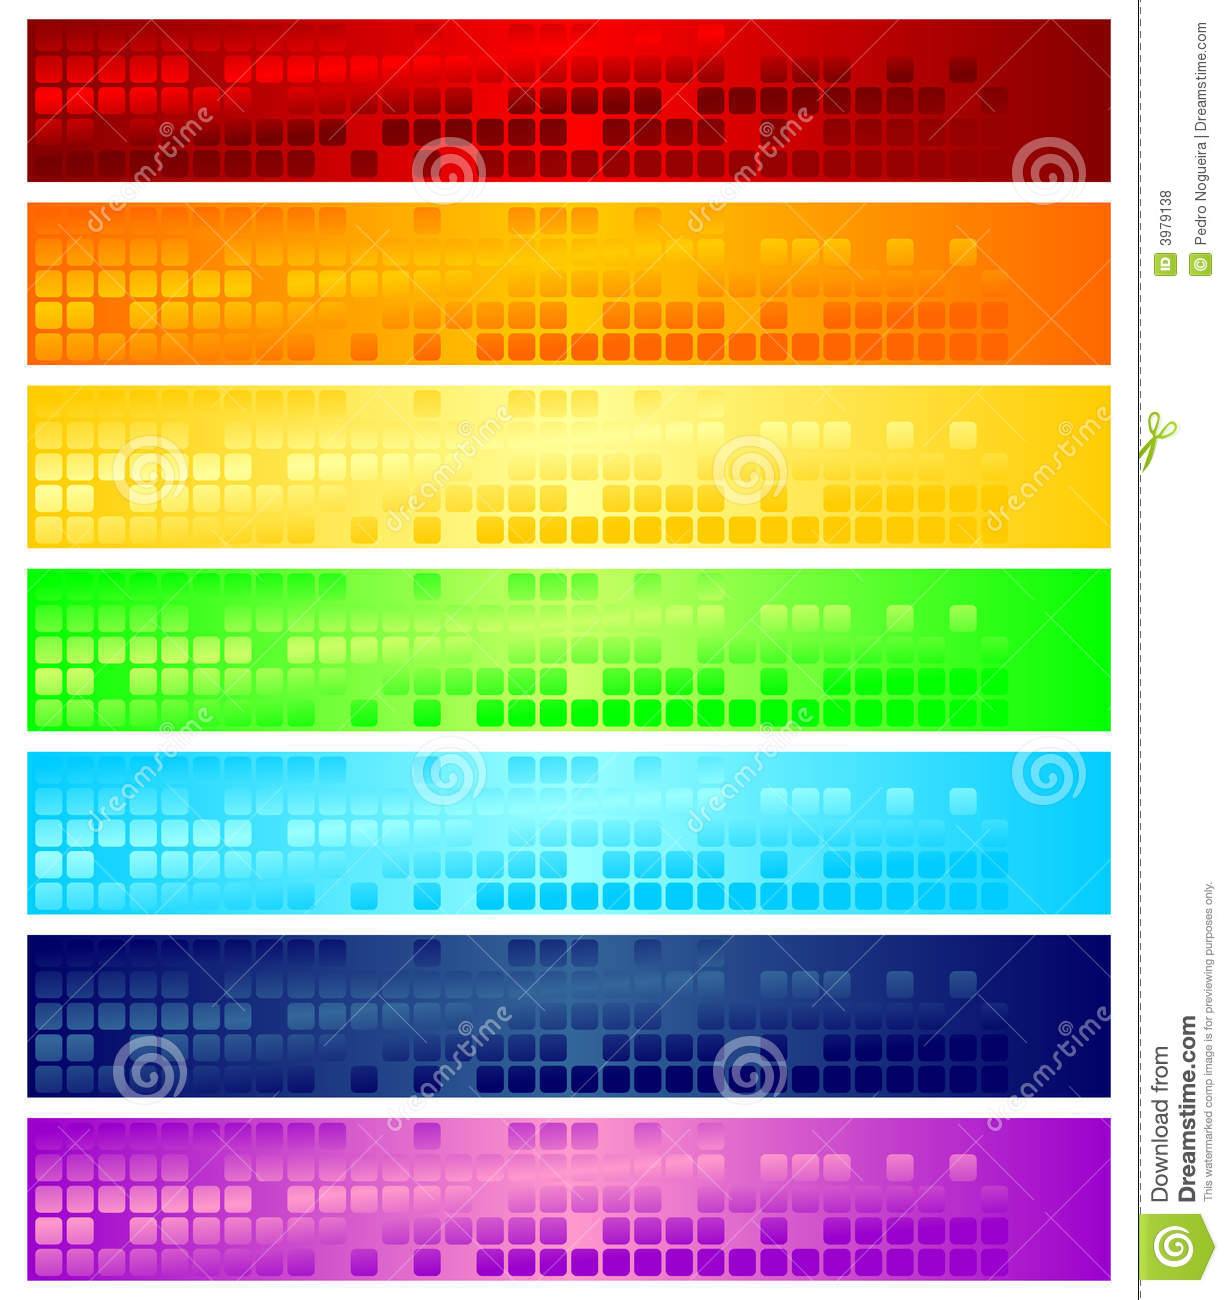 Web Banners Royalty Free Stock Photos - Image: 3979138